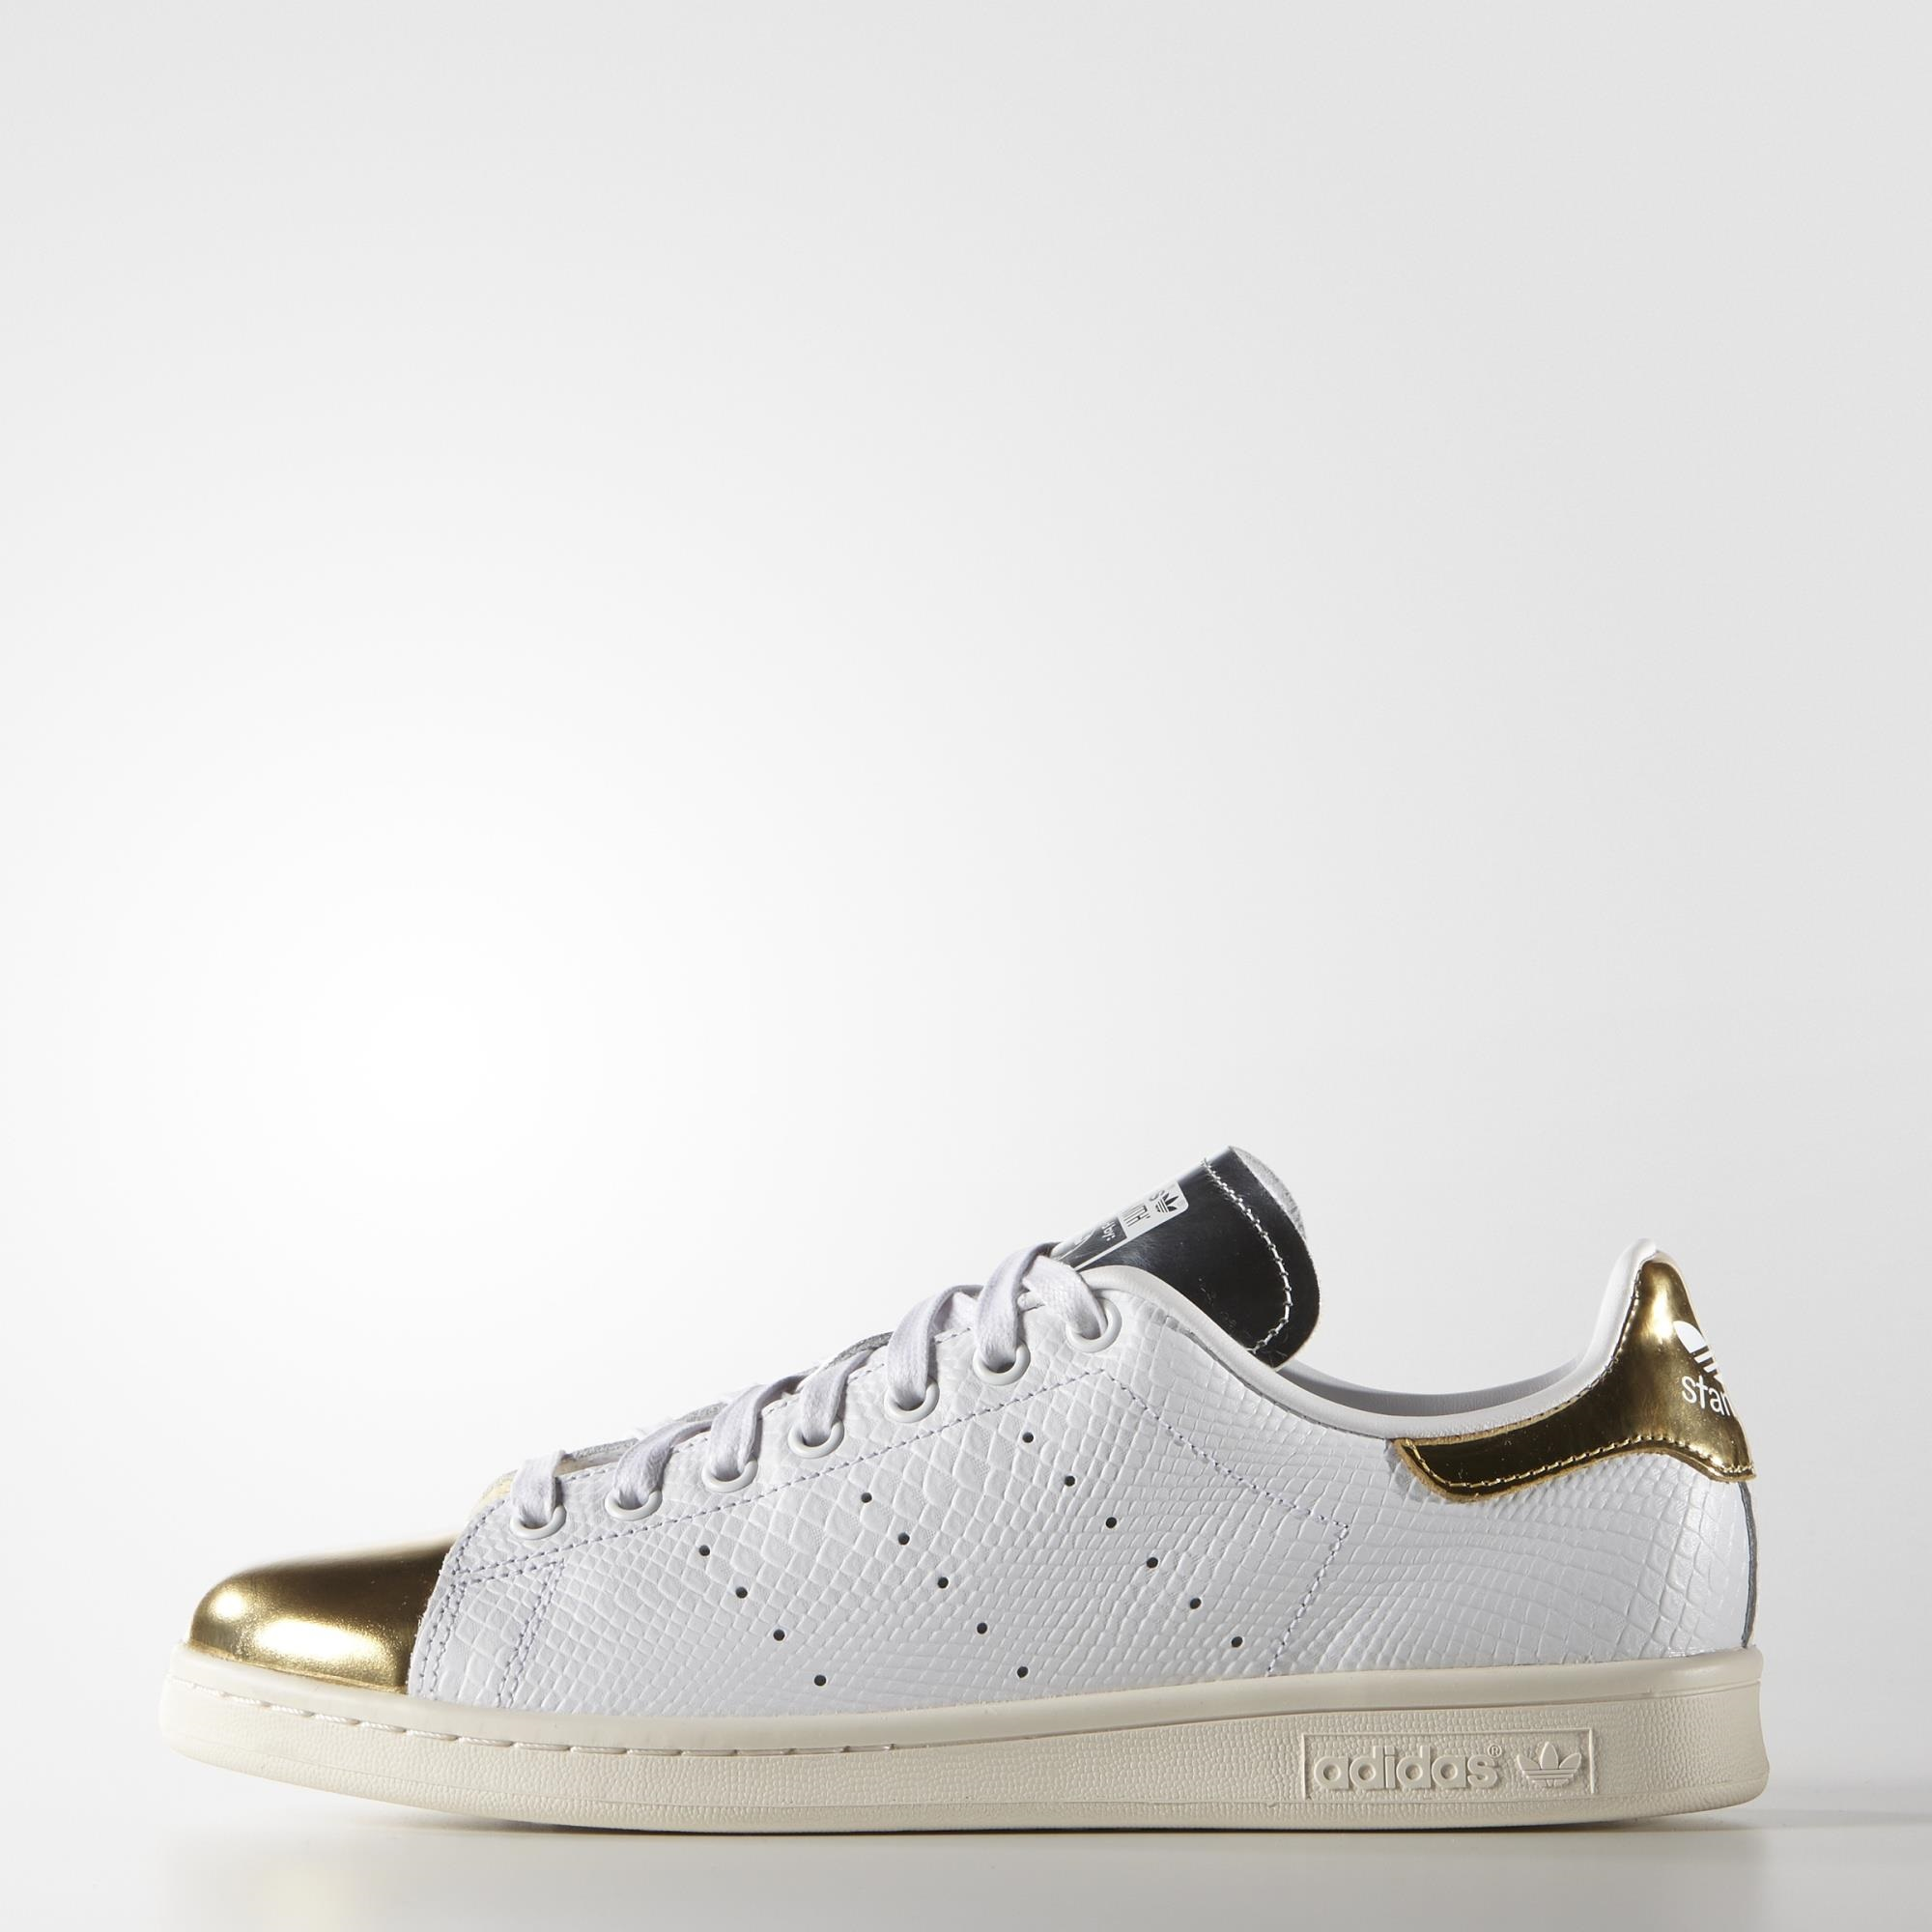 adidas stan smith schoenen wit